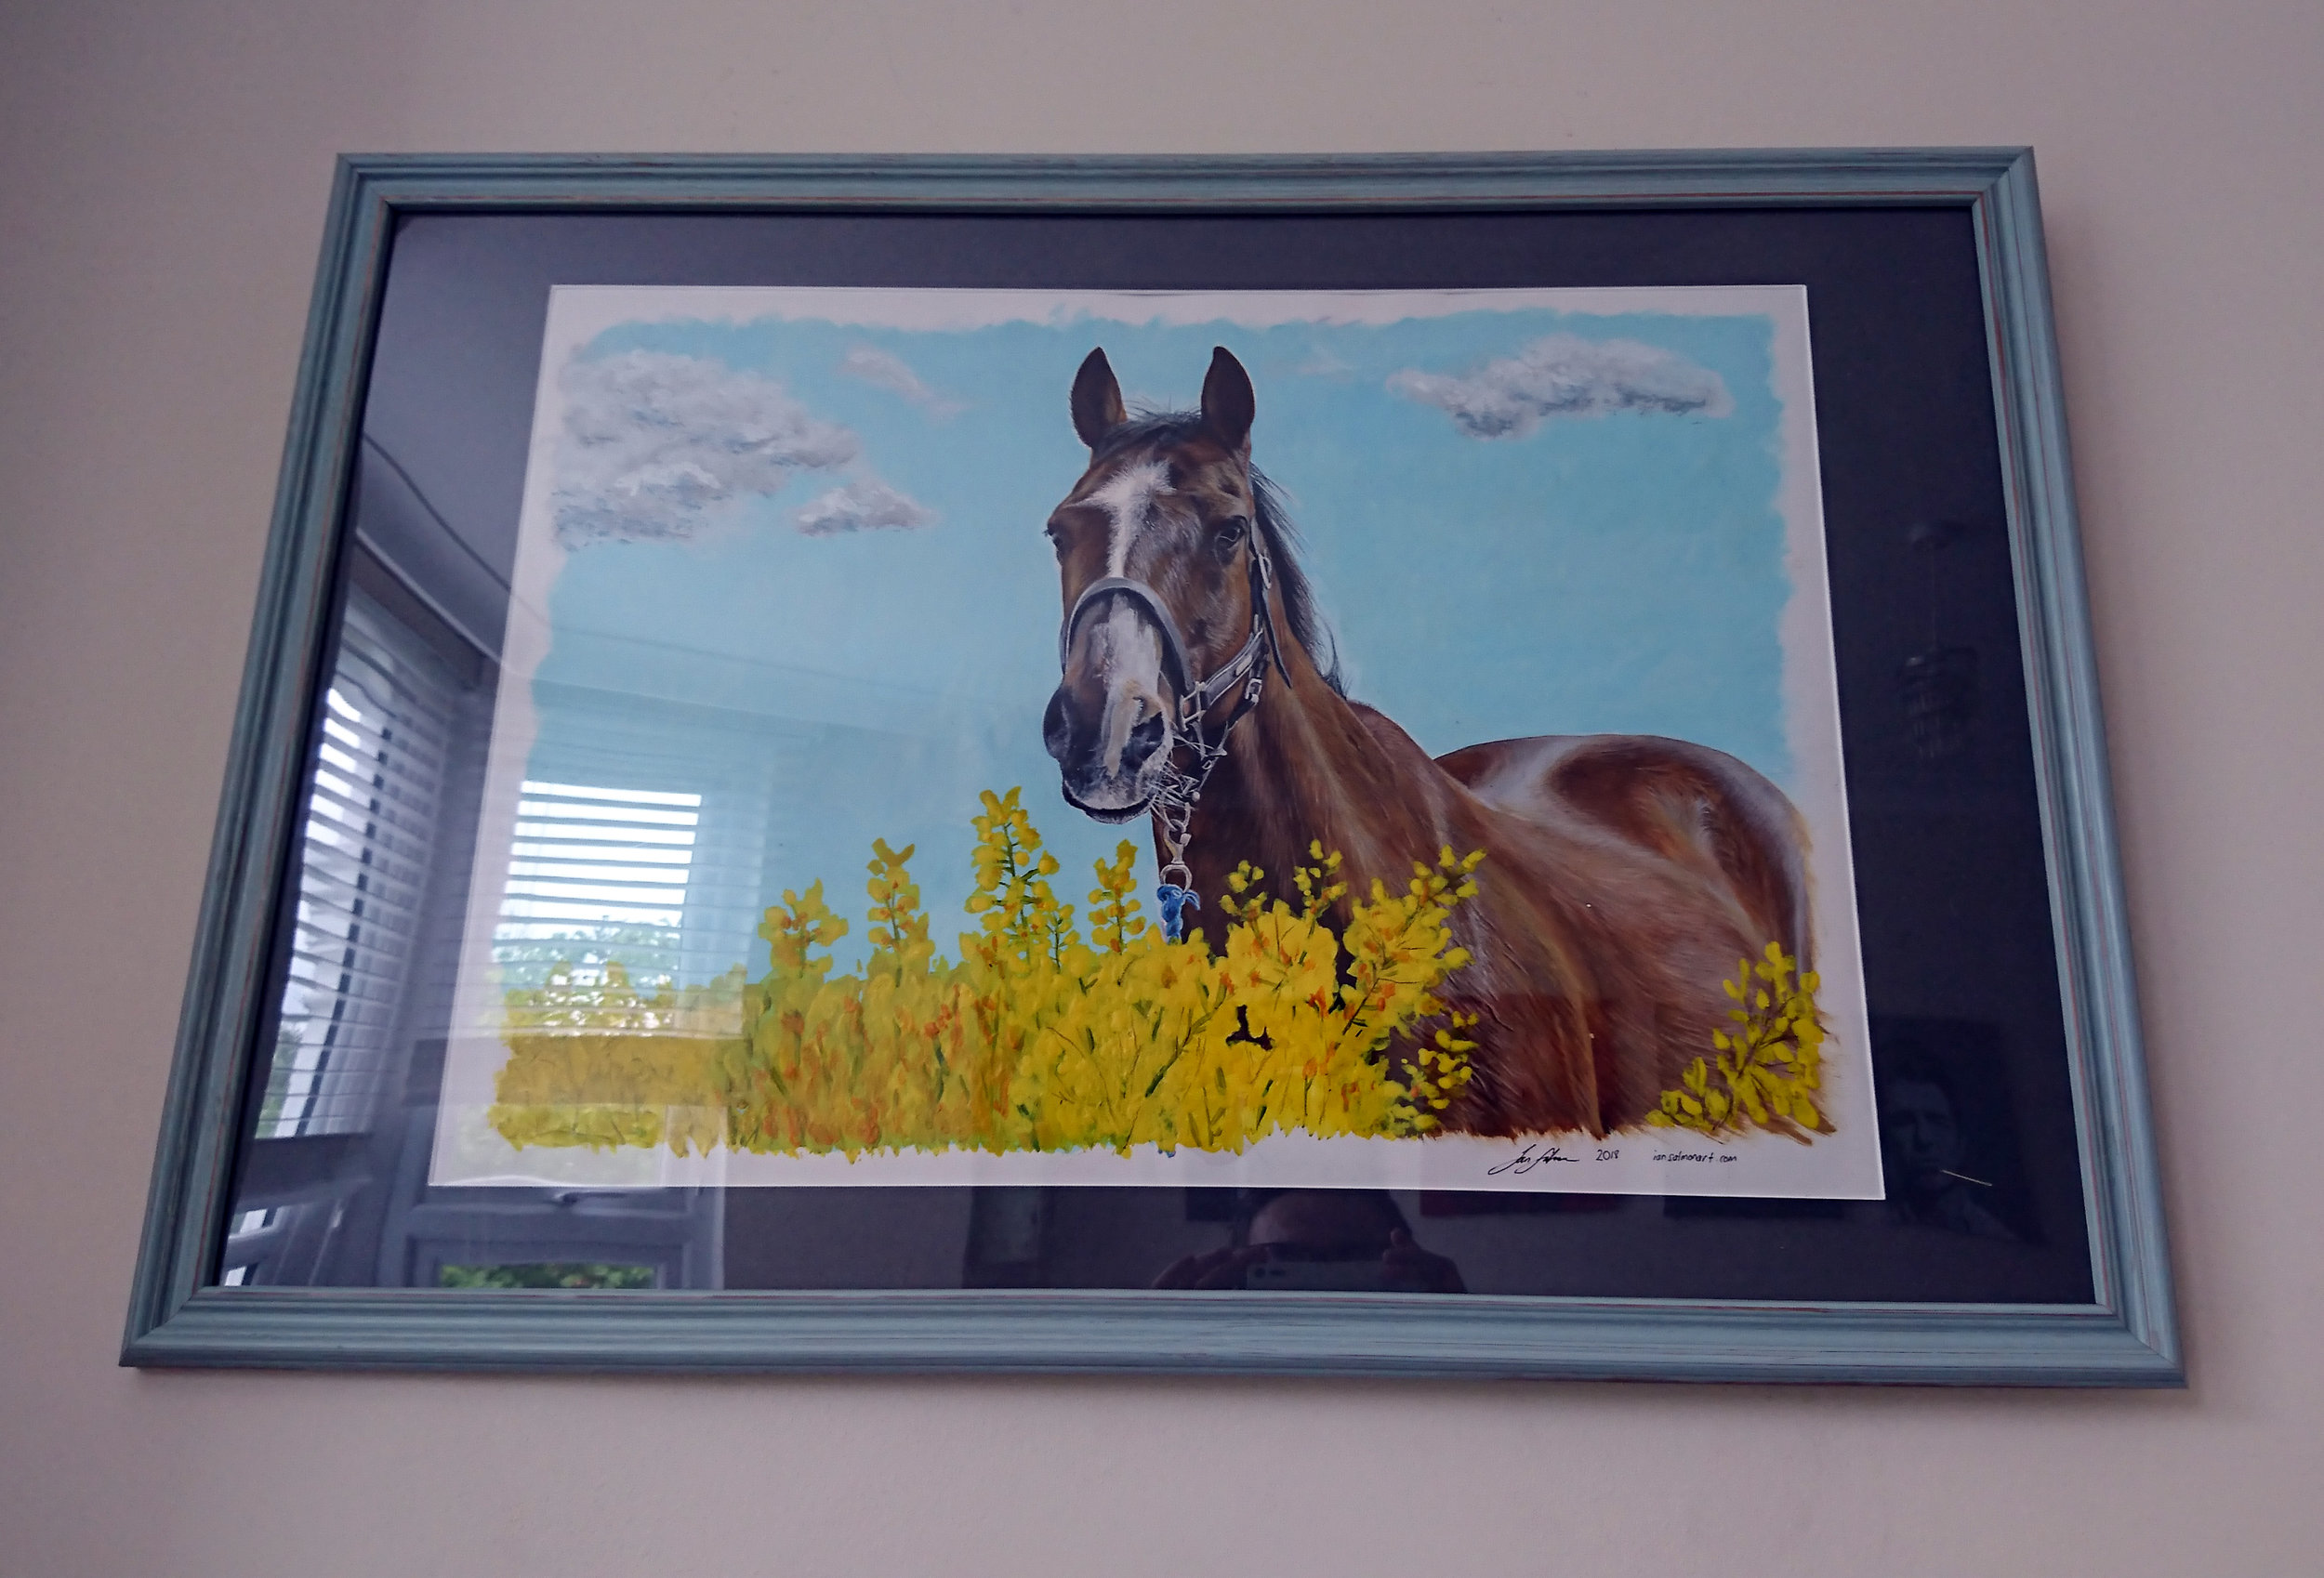 Debbie - 14/10/18Asked Ian to do a portrait of my horse that I lost over 4 years ago now. I couldn't have been happier with the result. He captured the coat so well I could reach out and stroke him once again. He also captured his character perfectly. Thank you so much Ian. A cherished memory captured.